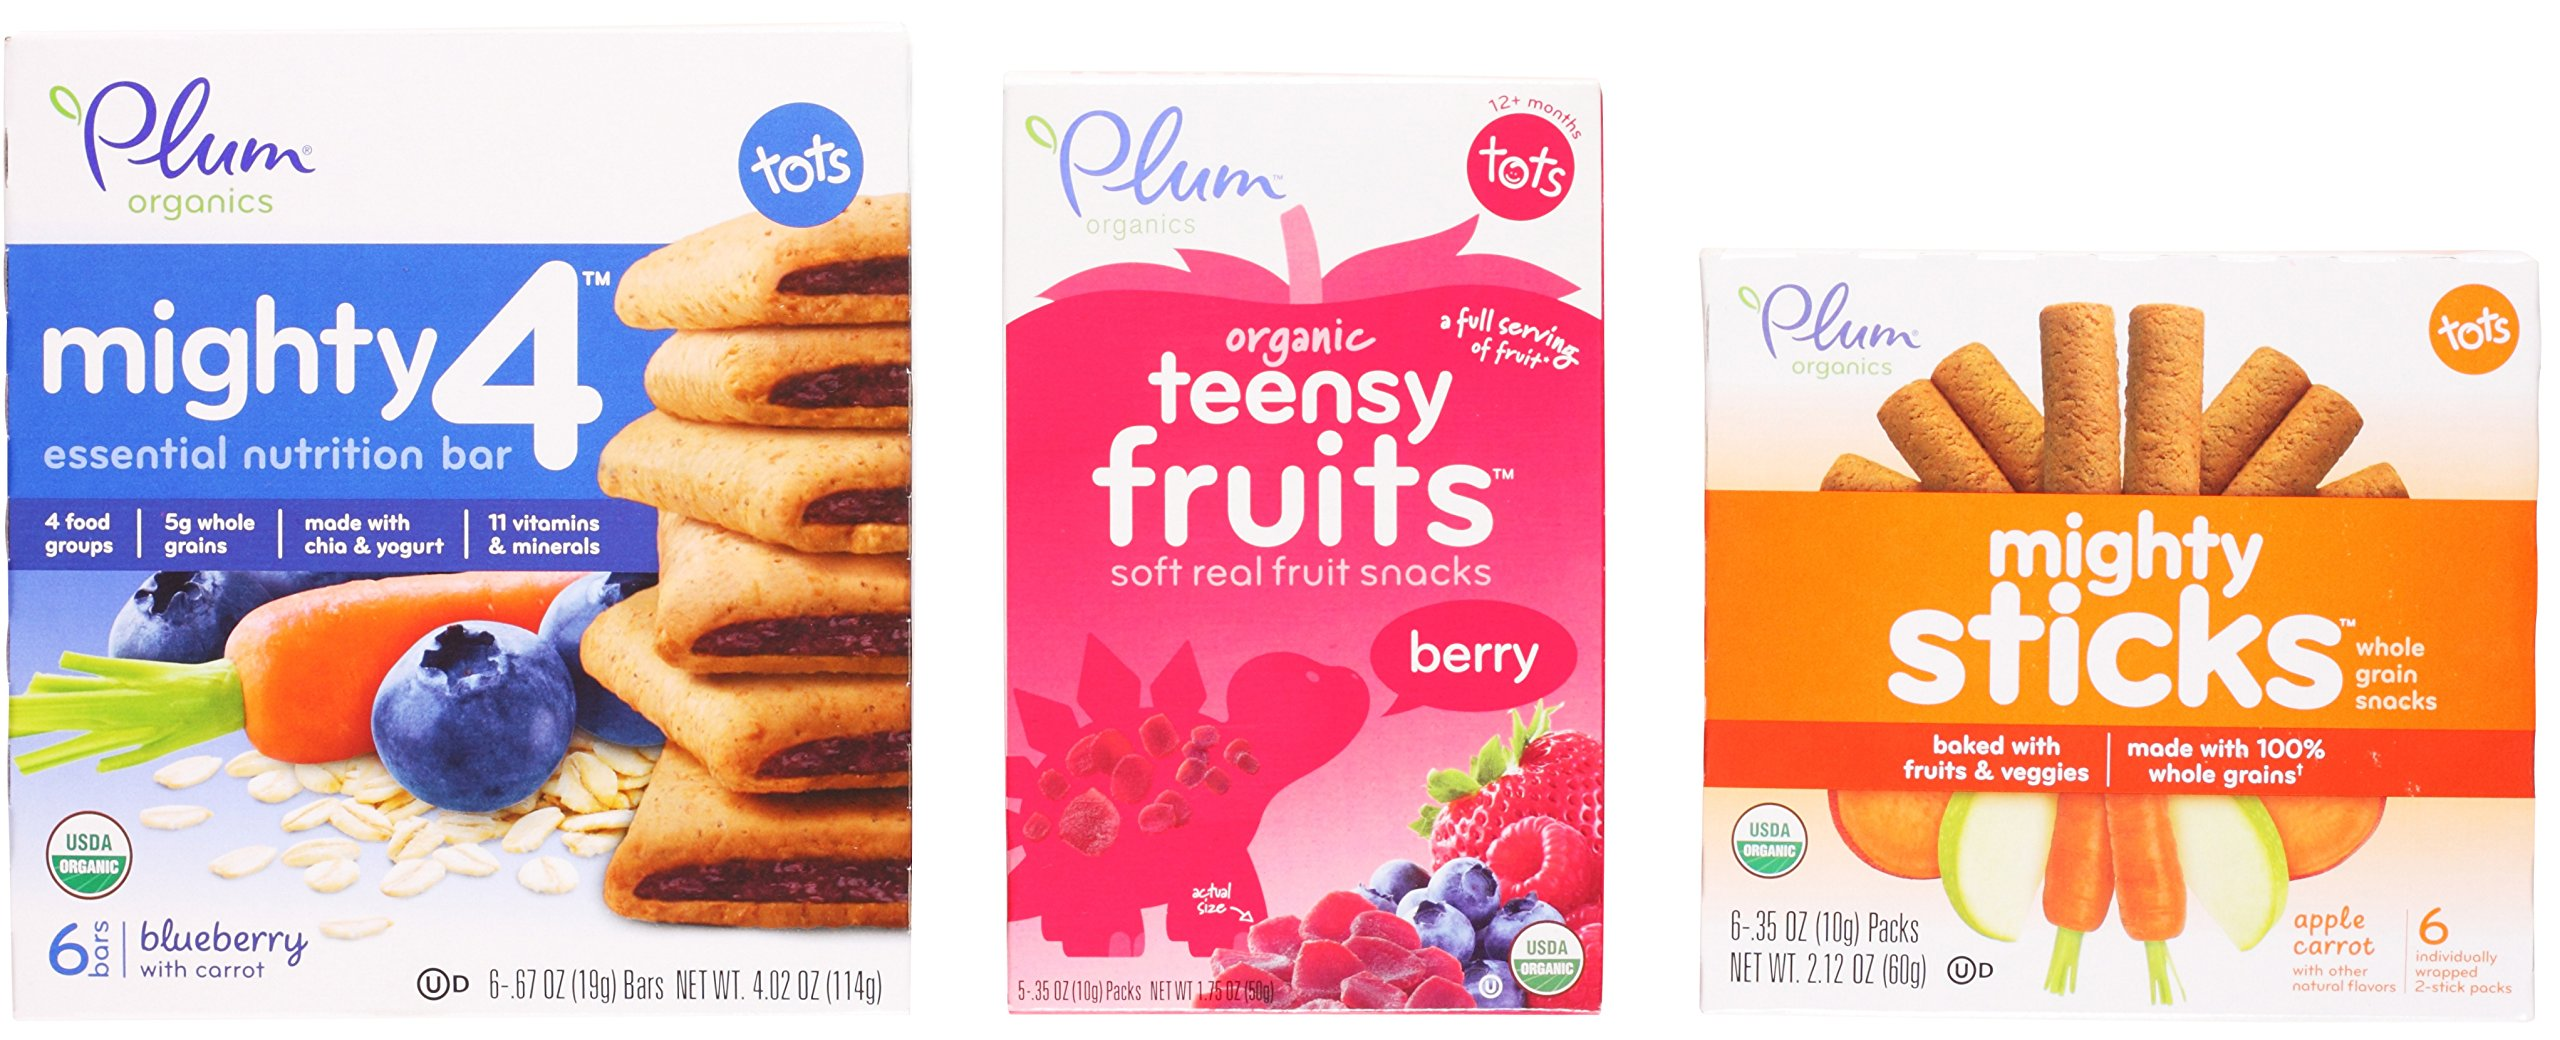 Plum Organics Toddler Snack Variety Bundle: (1) Mighty 4 Blueberry with Carrot Essential Nutrition Bars 4.02oz, (1) Berry Teensy Fruits 1.75oz, and (1) Apple Carrot Mighty Sticks 2.12oz (3 Pack Total) by Plum Organics